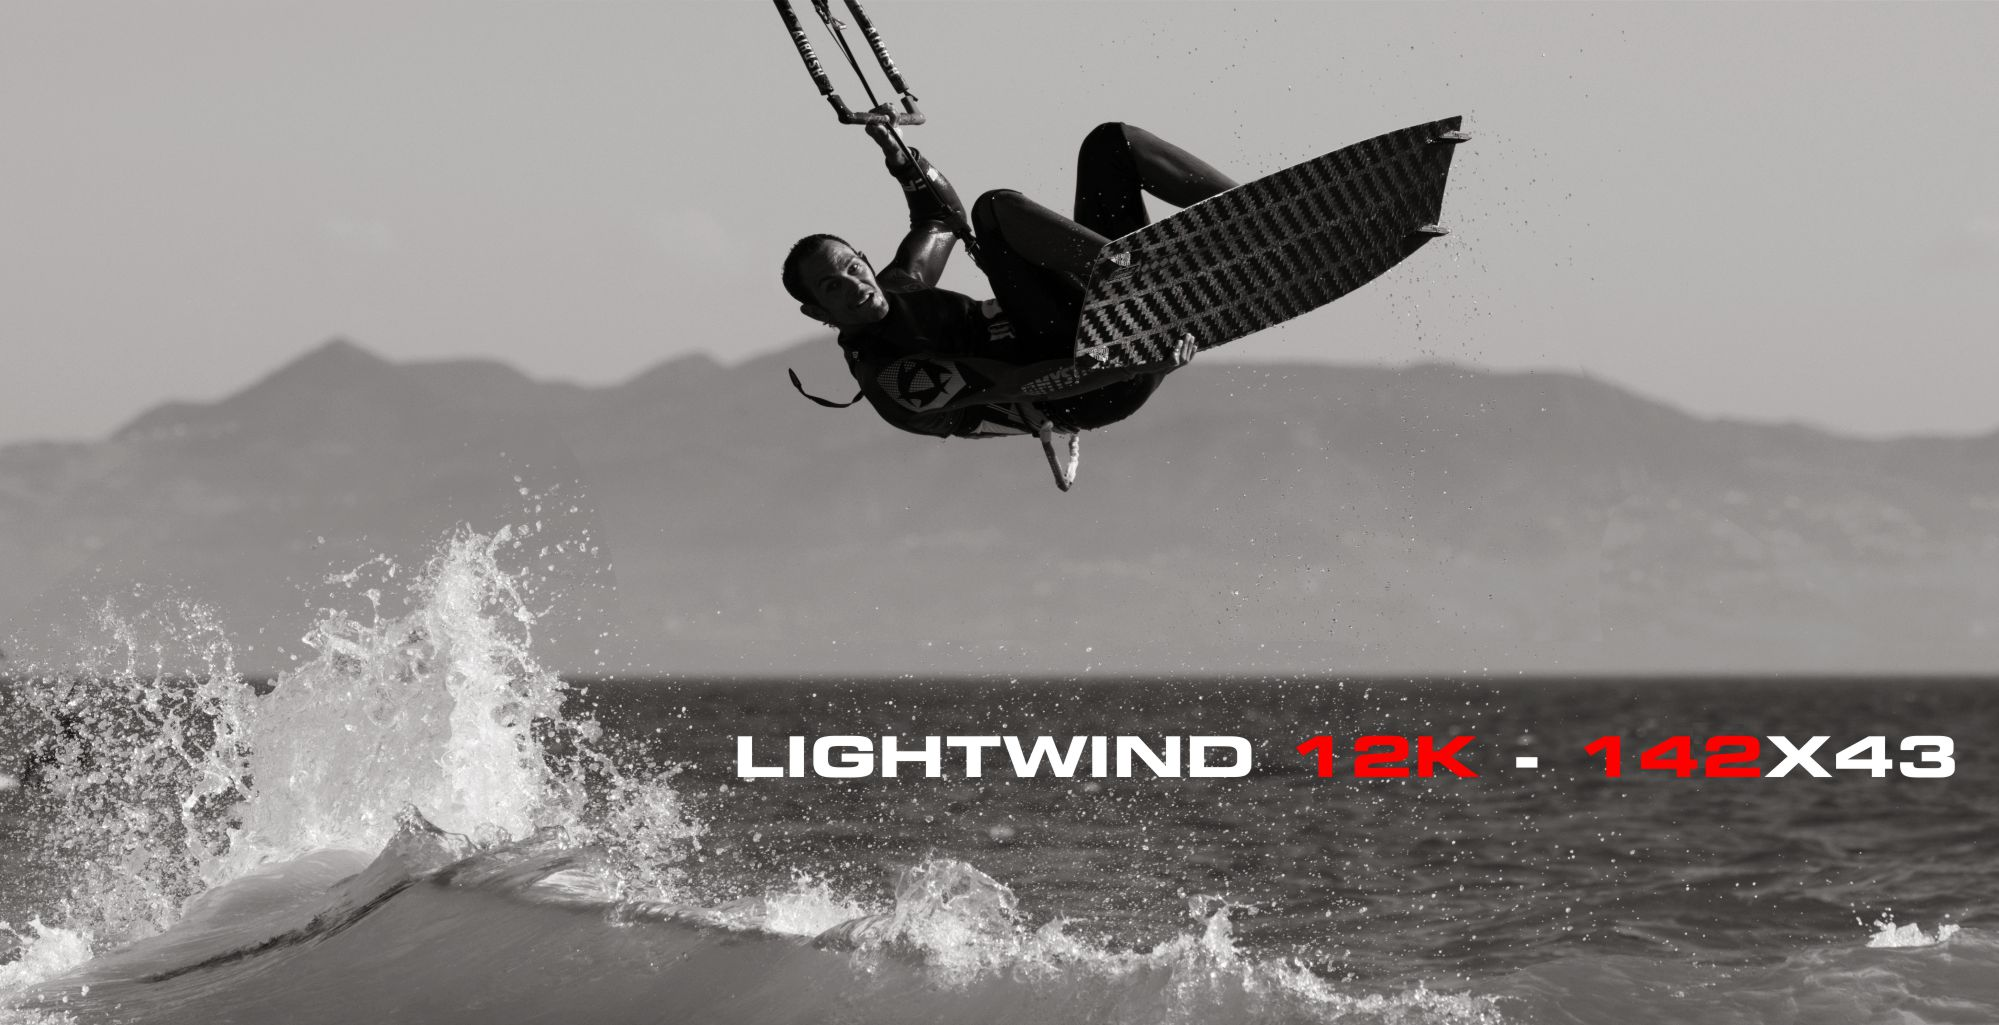 testing in tarifa 142 lightwind 12k